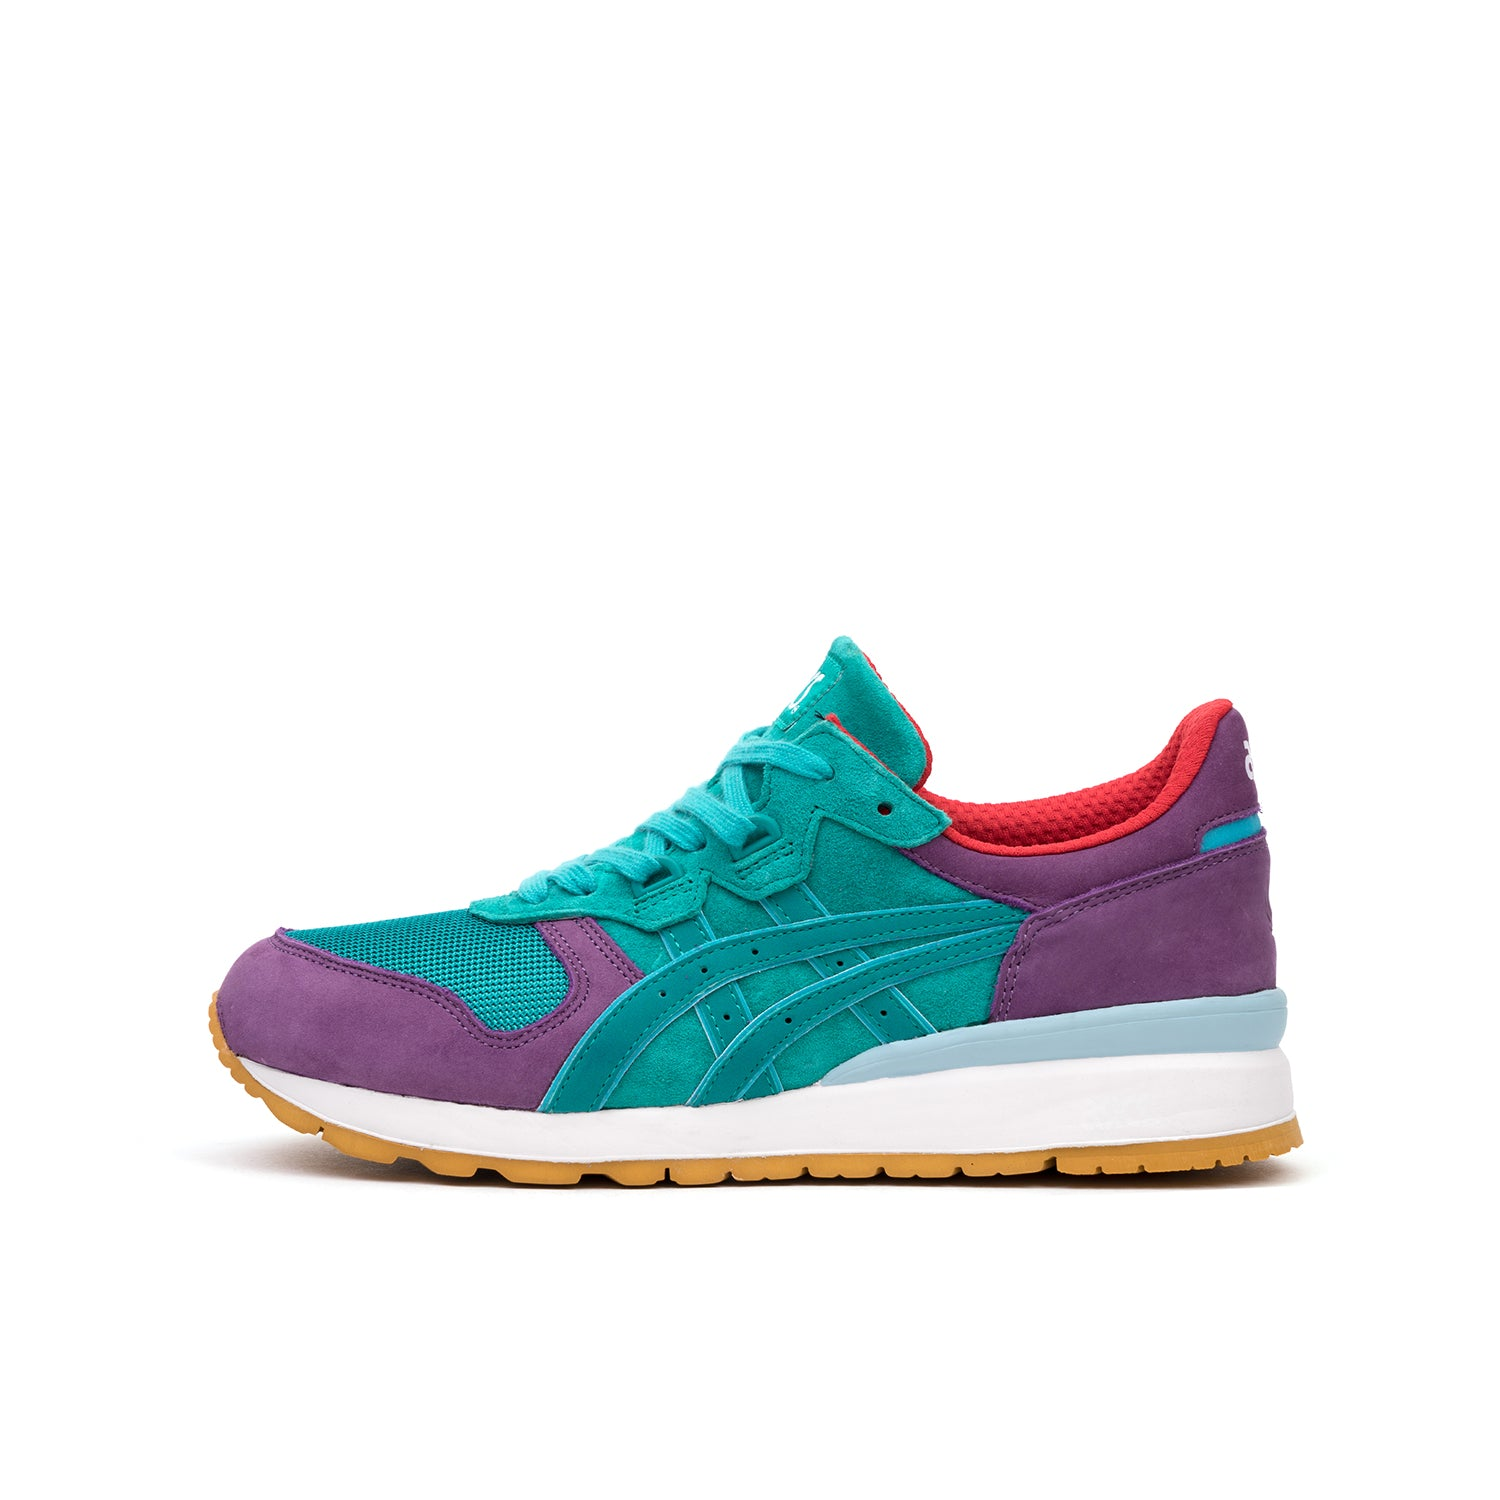 best service 41c39 cc859 Asics Gel-Epirus Tropical Green